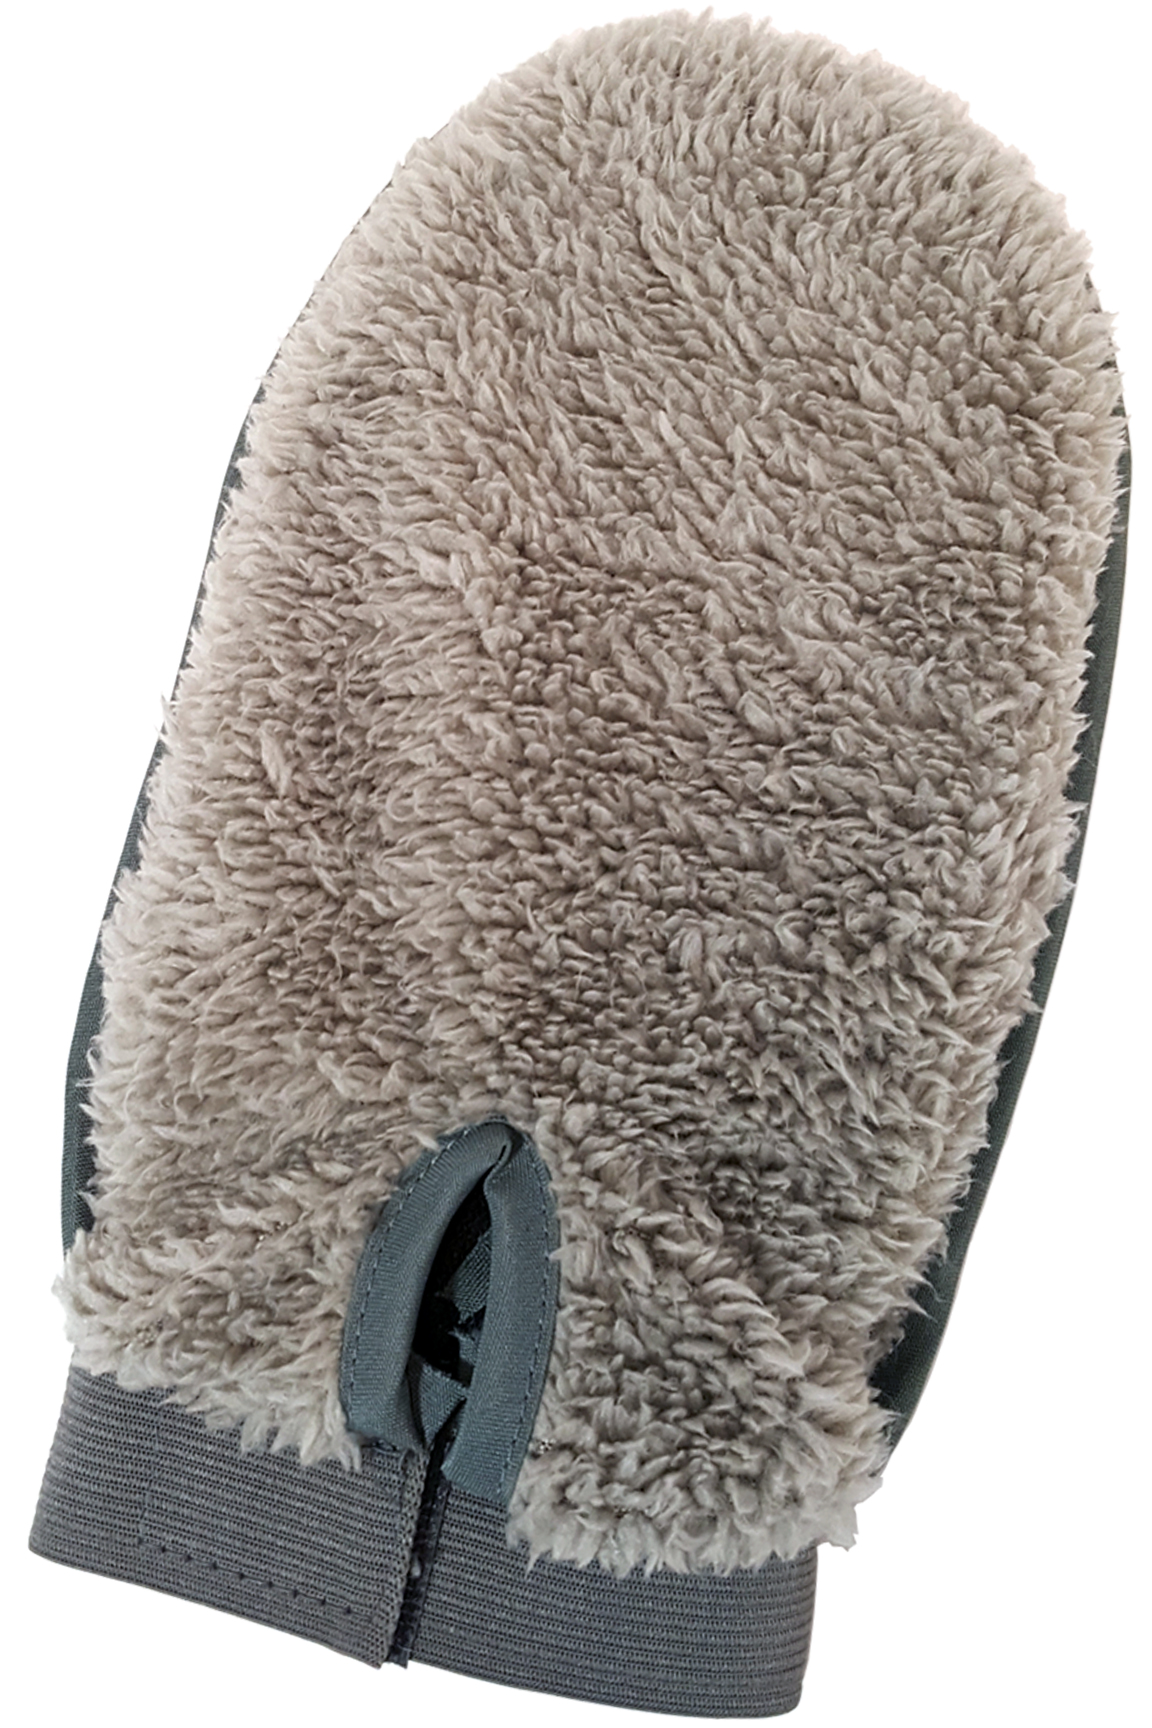 Fluffy back side for wiping, dying, washing or cleaning. Adjustable strap.